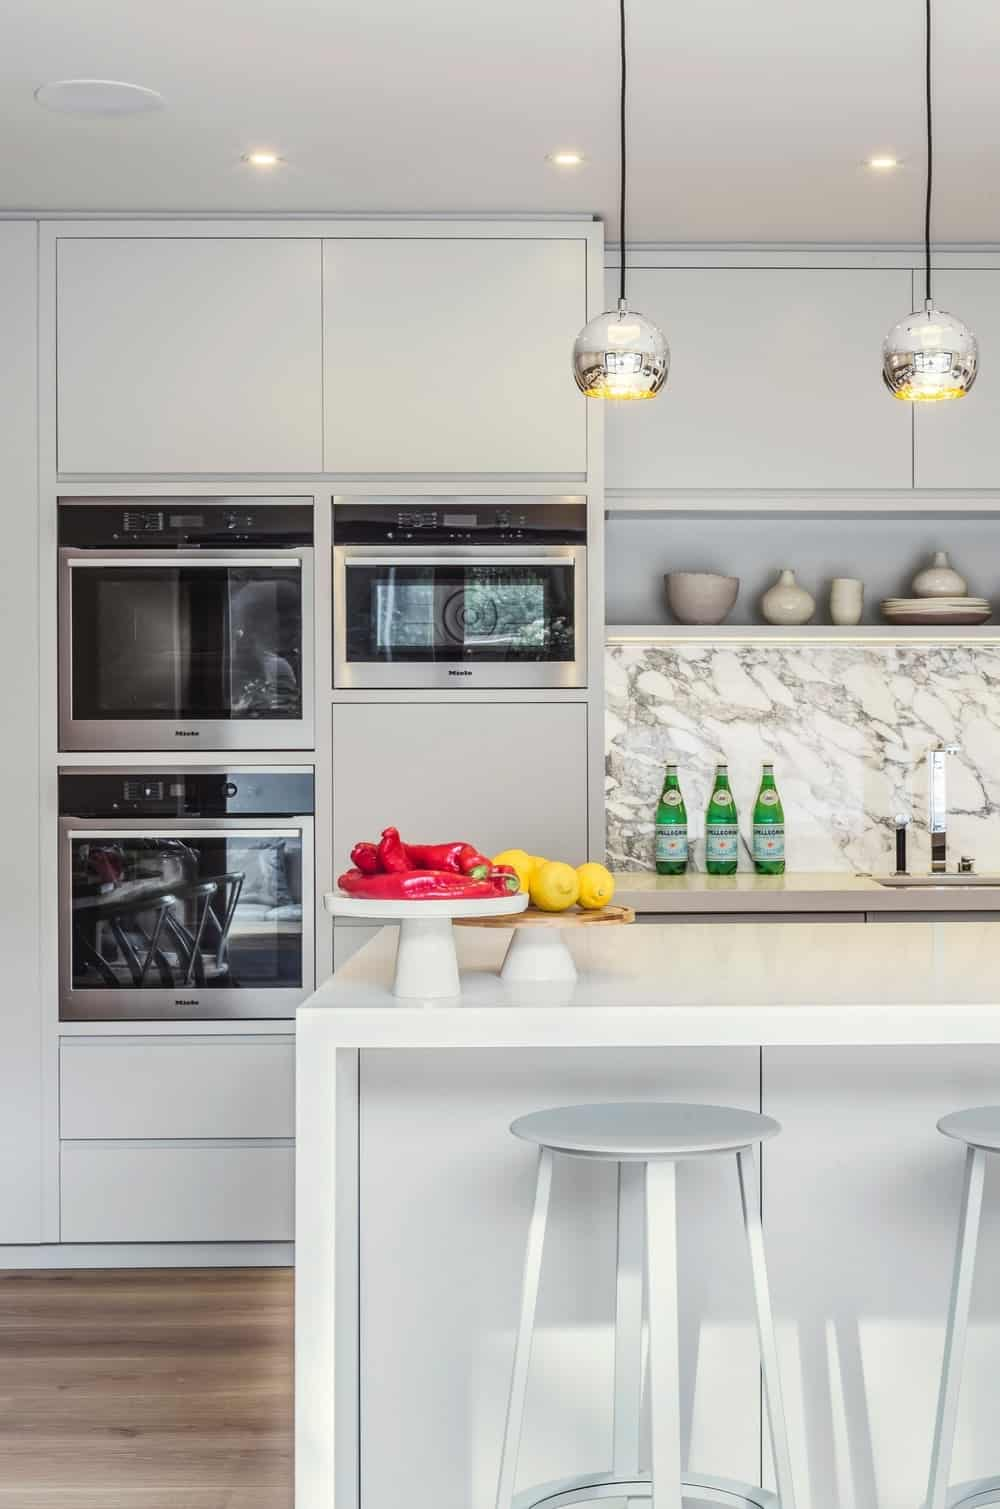 Contemporary kitchen with large center island and breakfast bar along with white cabinets and stainless steel appliance. Photo credit: Photography / Styling : Rick Mccullagh / LLI Design